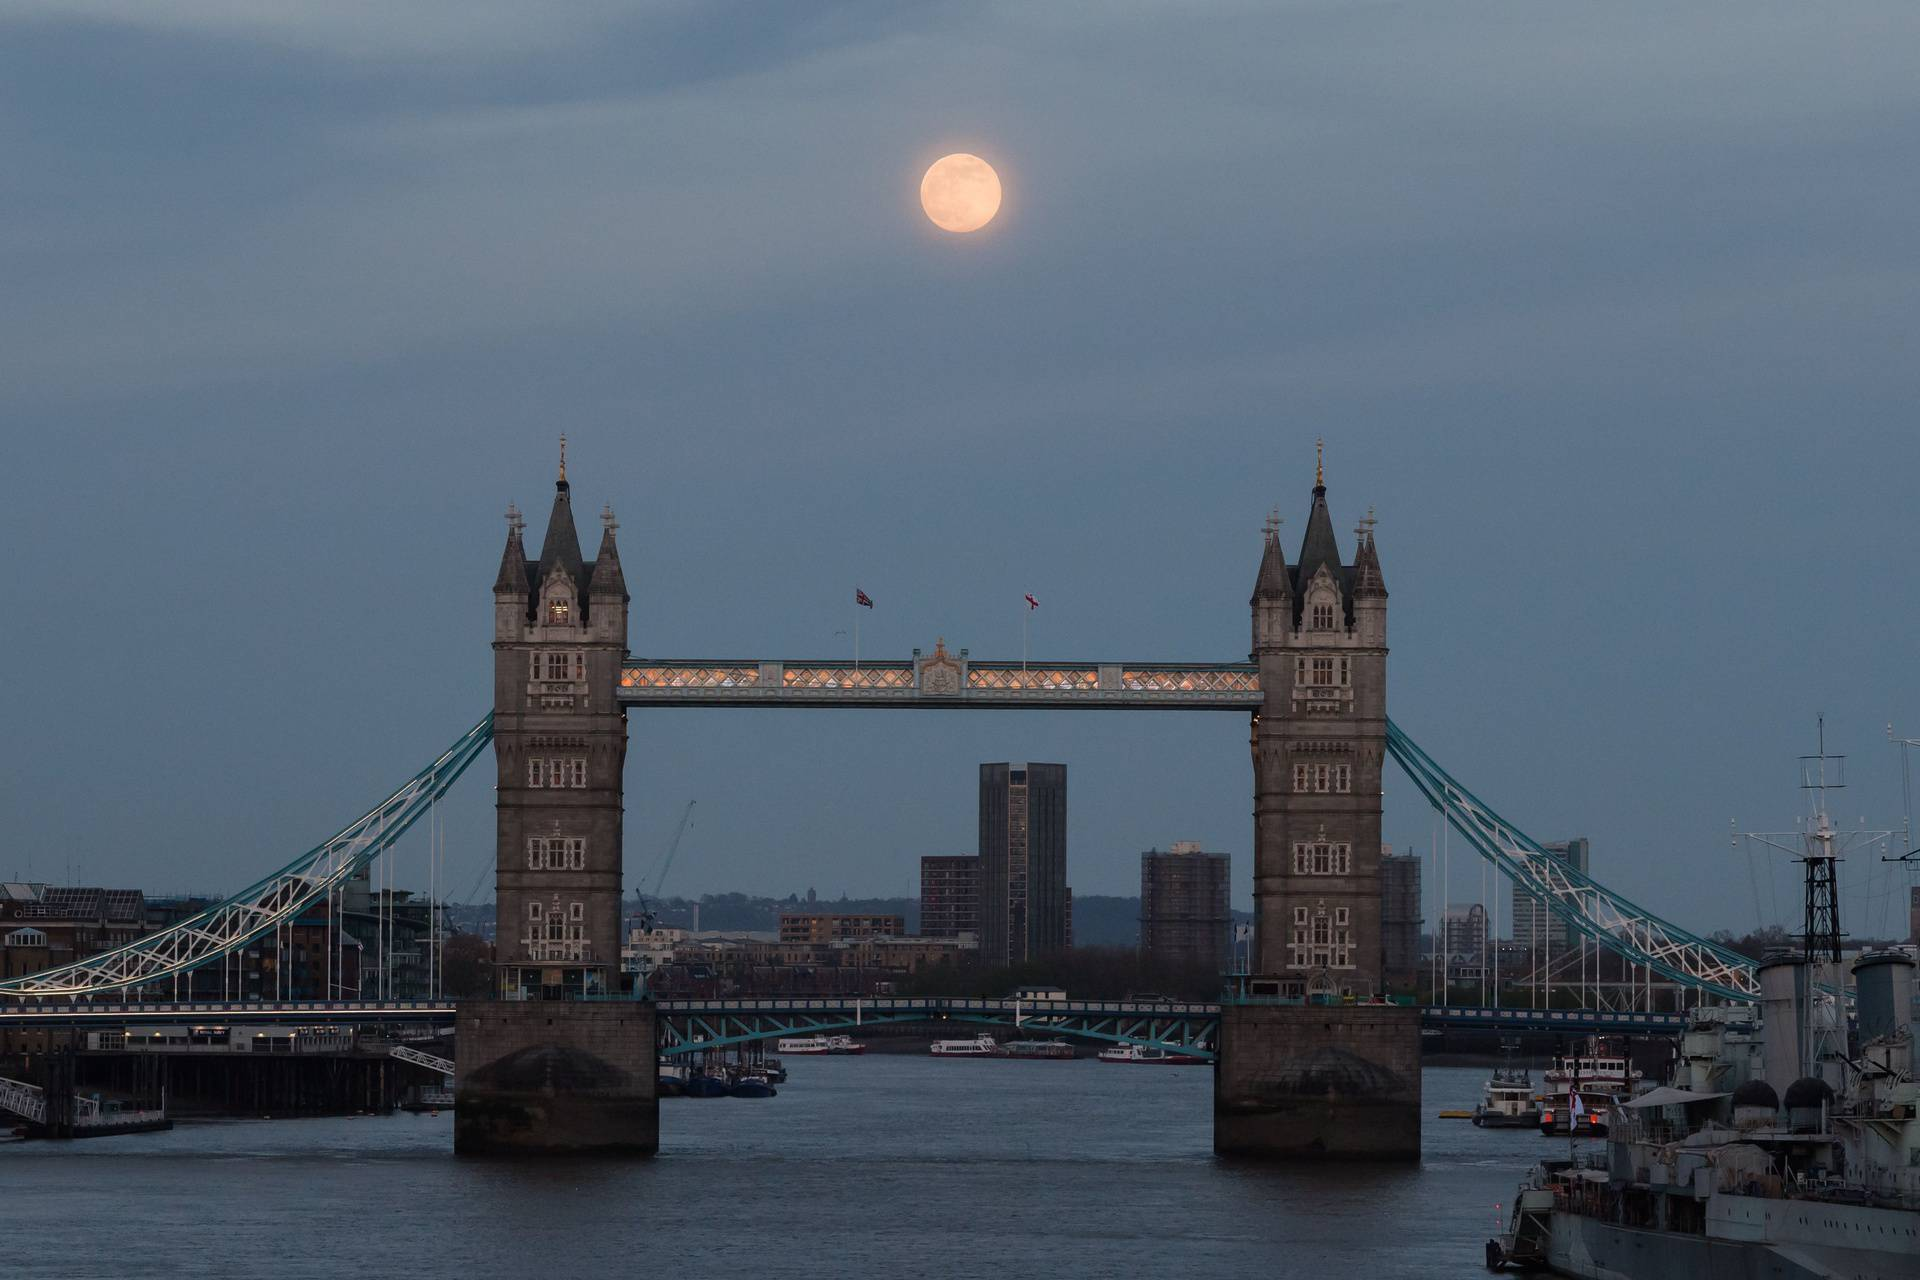 Pink Supermoon In London, United Kingdom - 26 Apr 2021